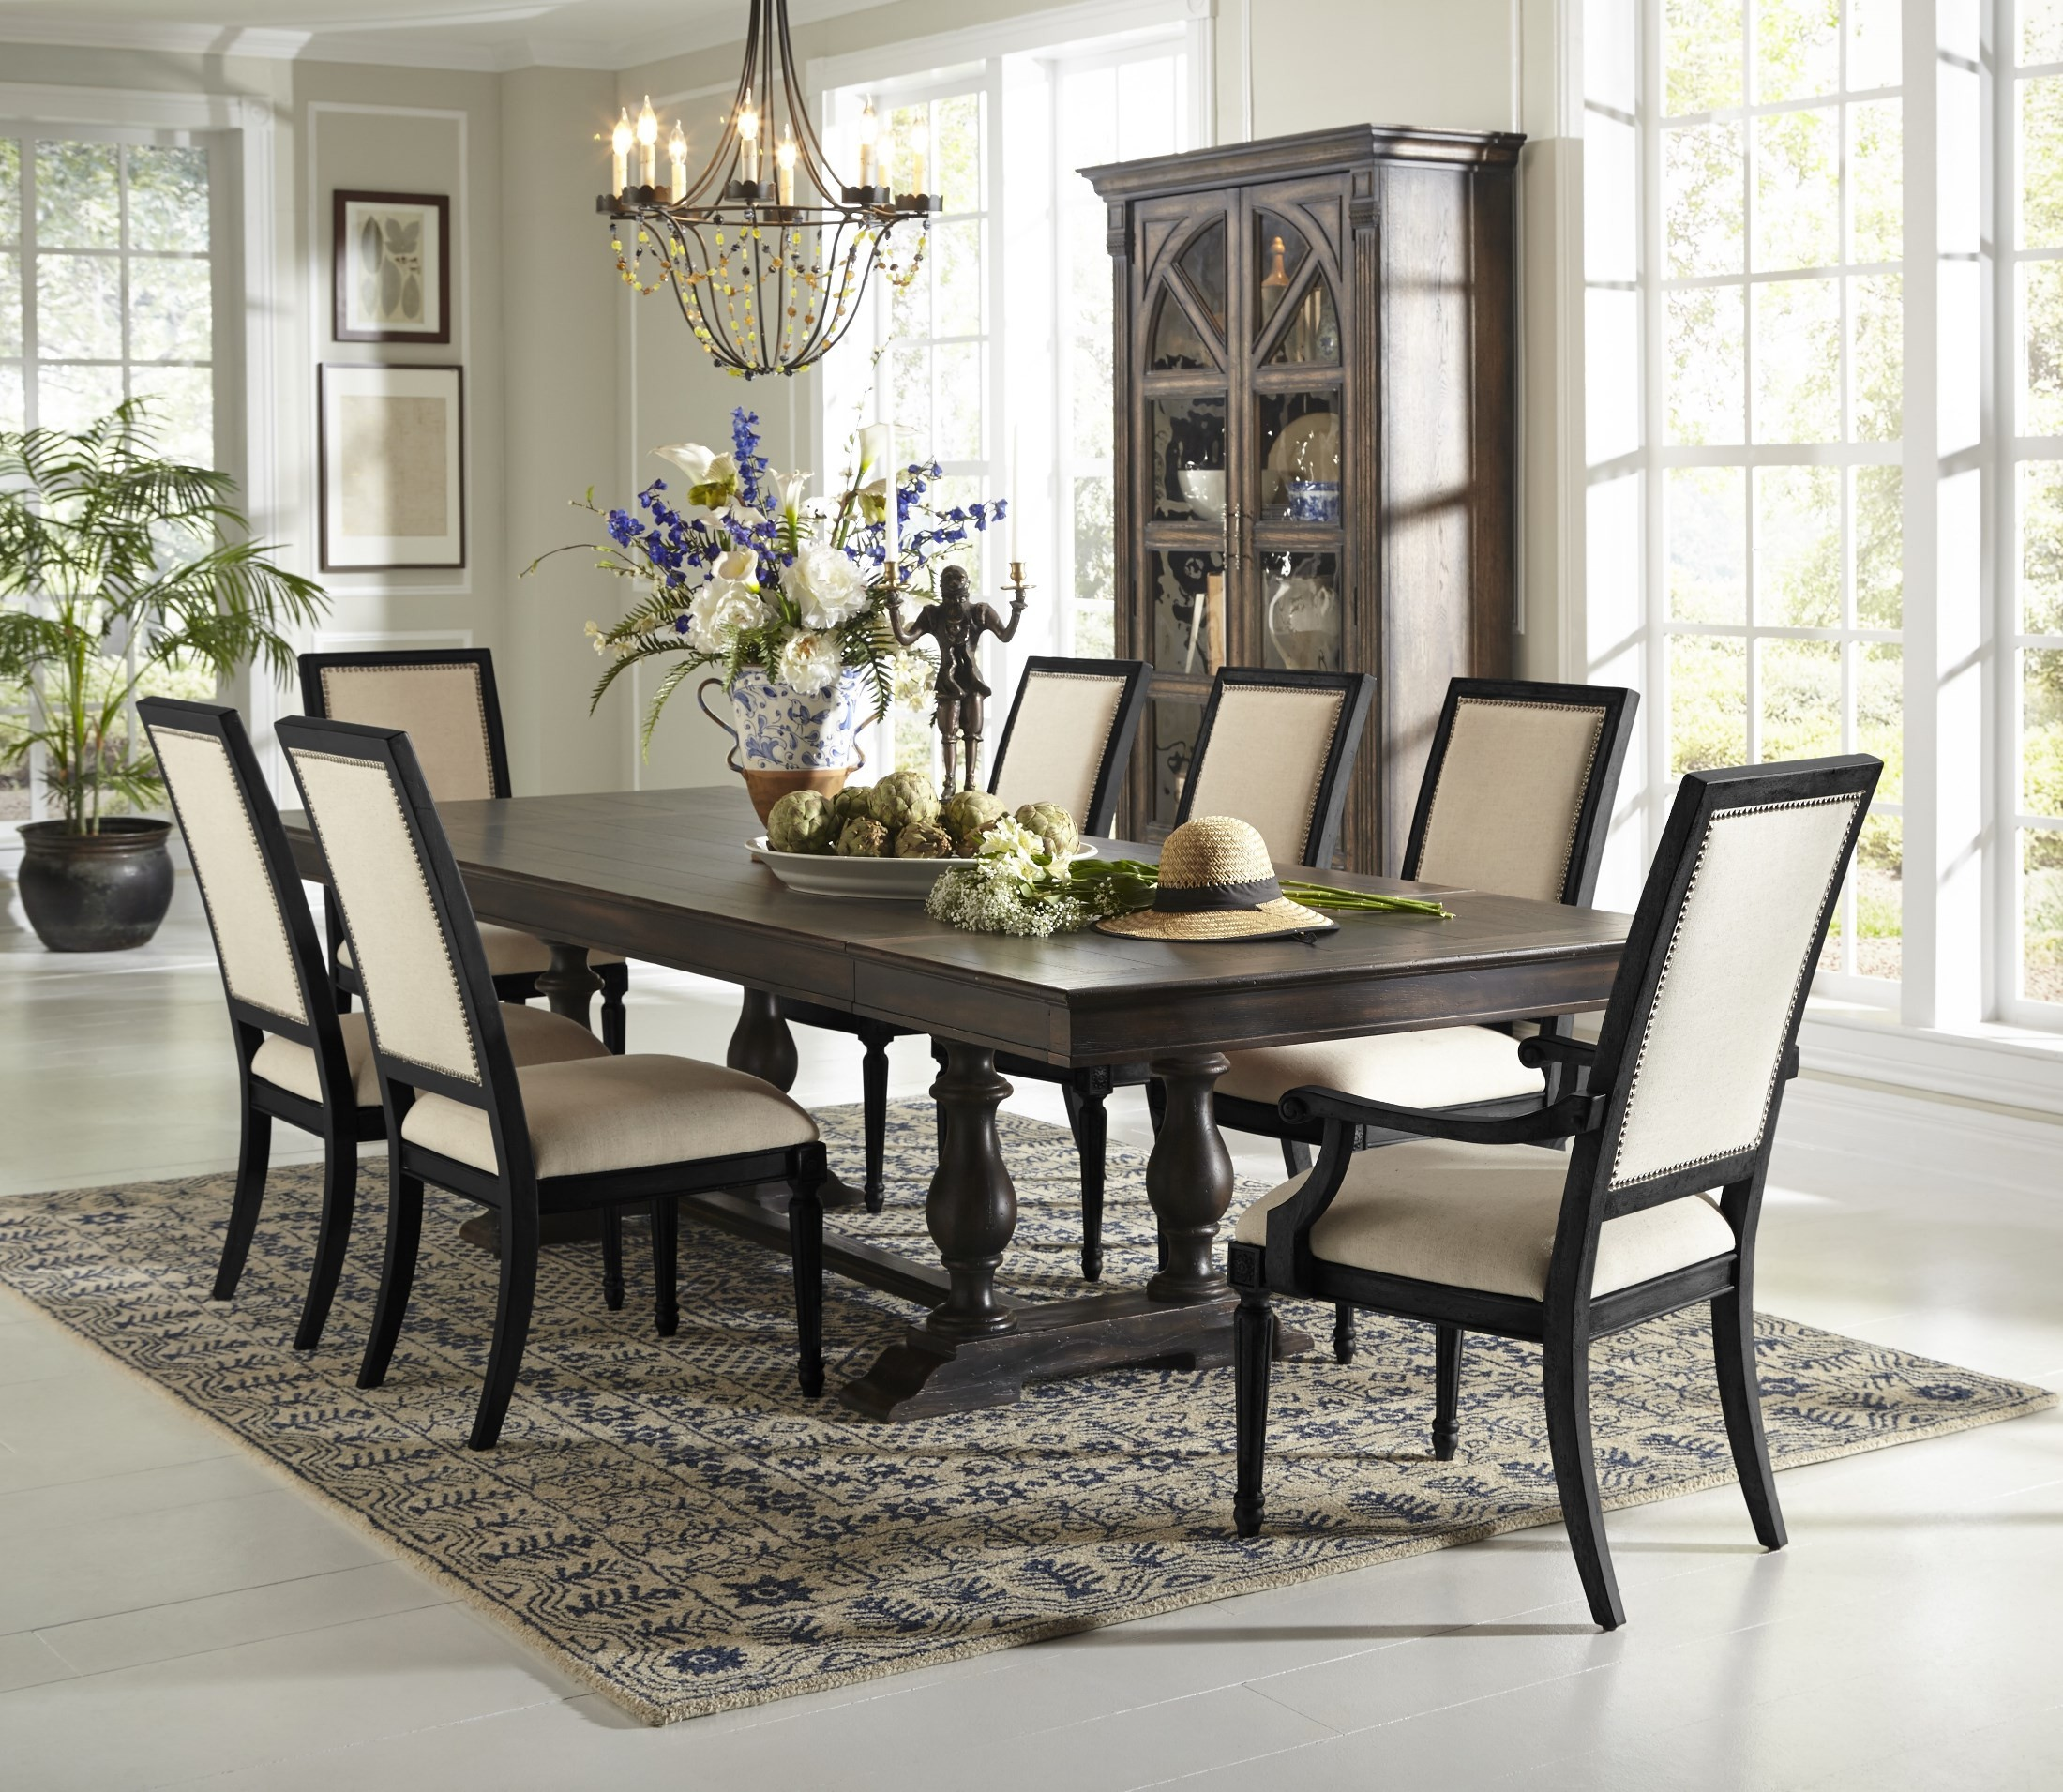 Accentrics montserrat extendable dining room set from pulaski 201015 16 coleman furniture - Pulaski dining room ...